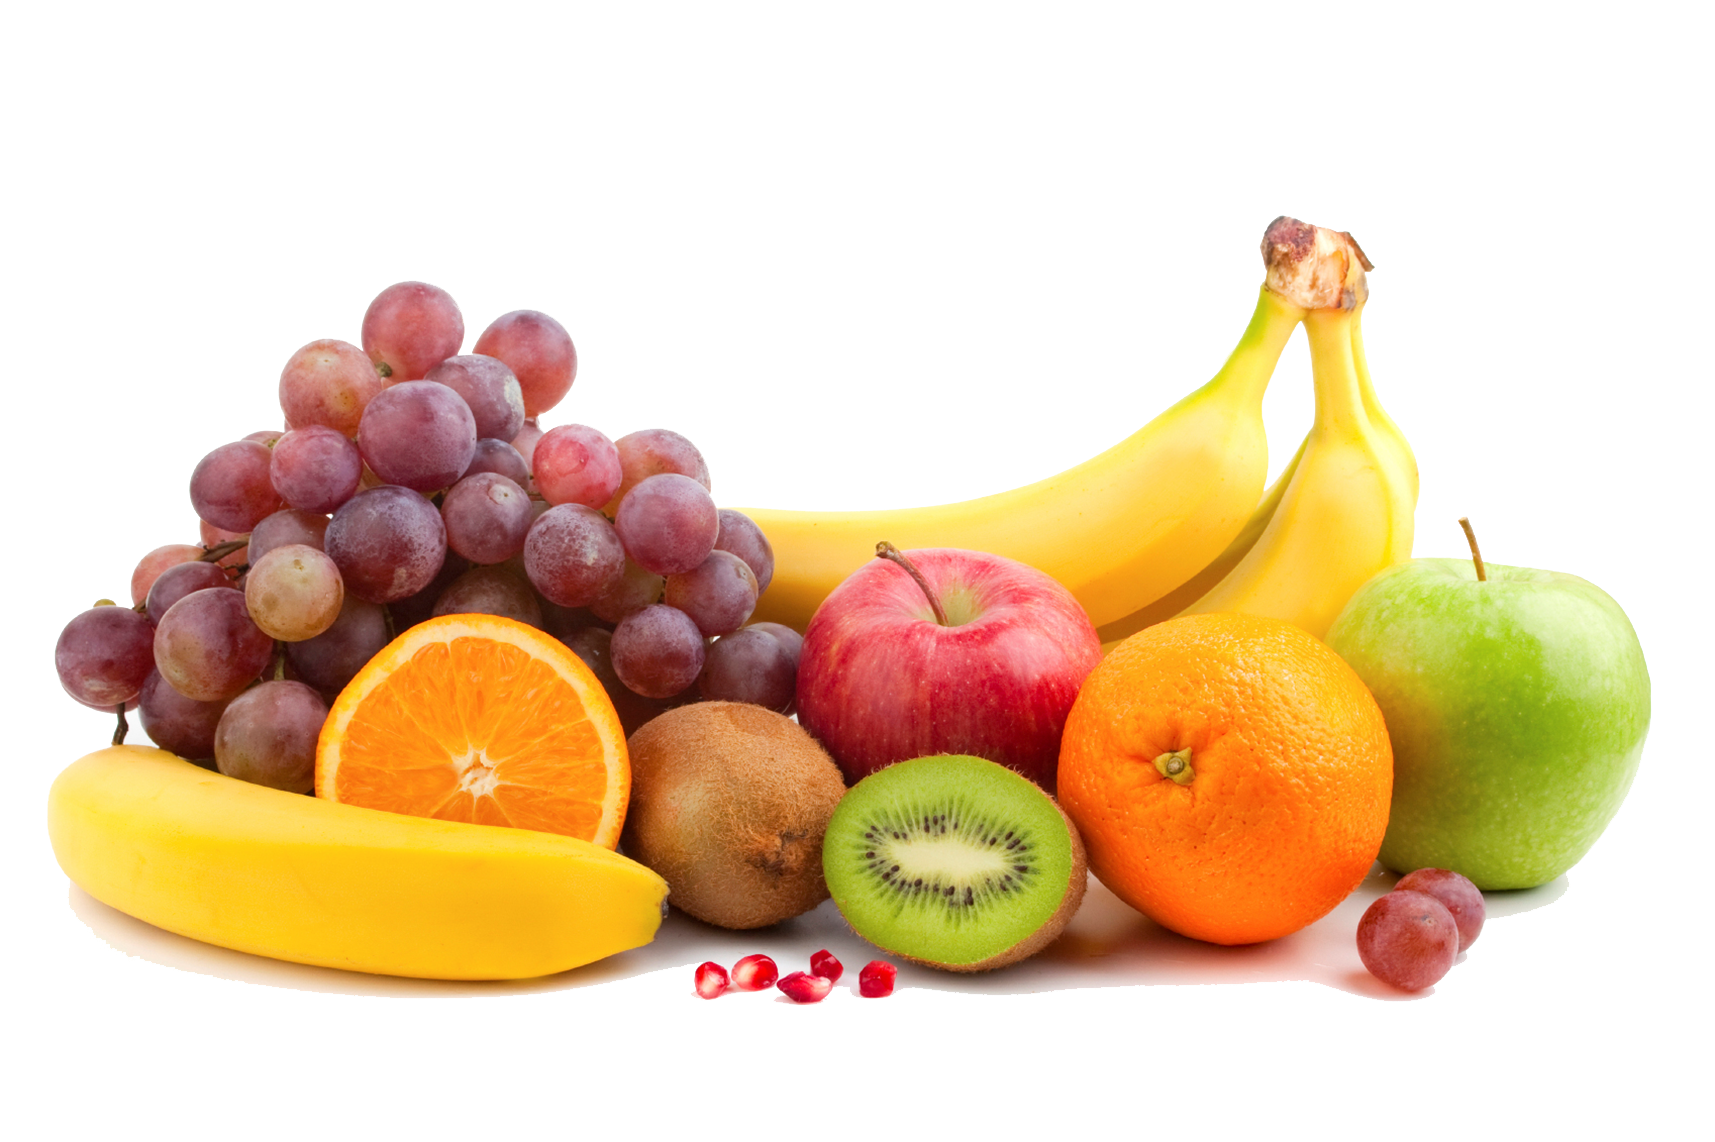 Fruits clipart fruit platter. Png transparent images all